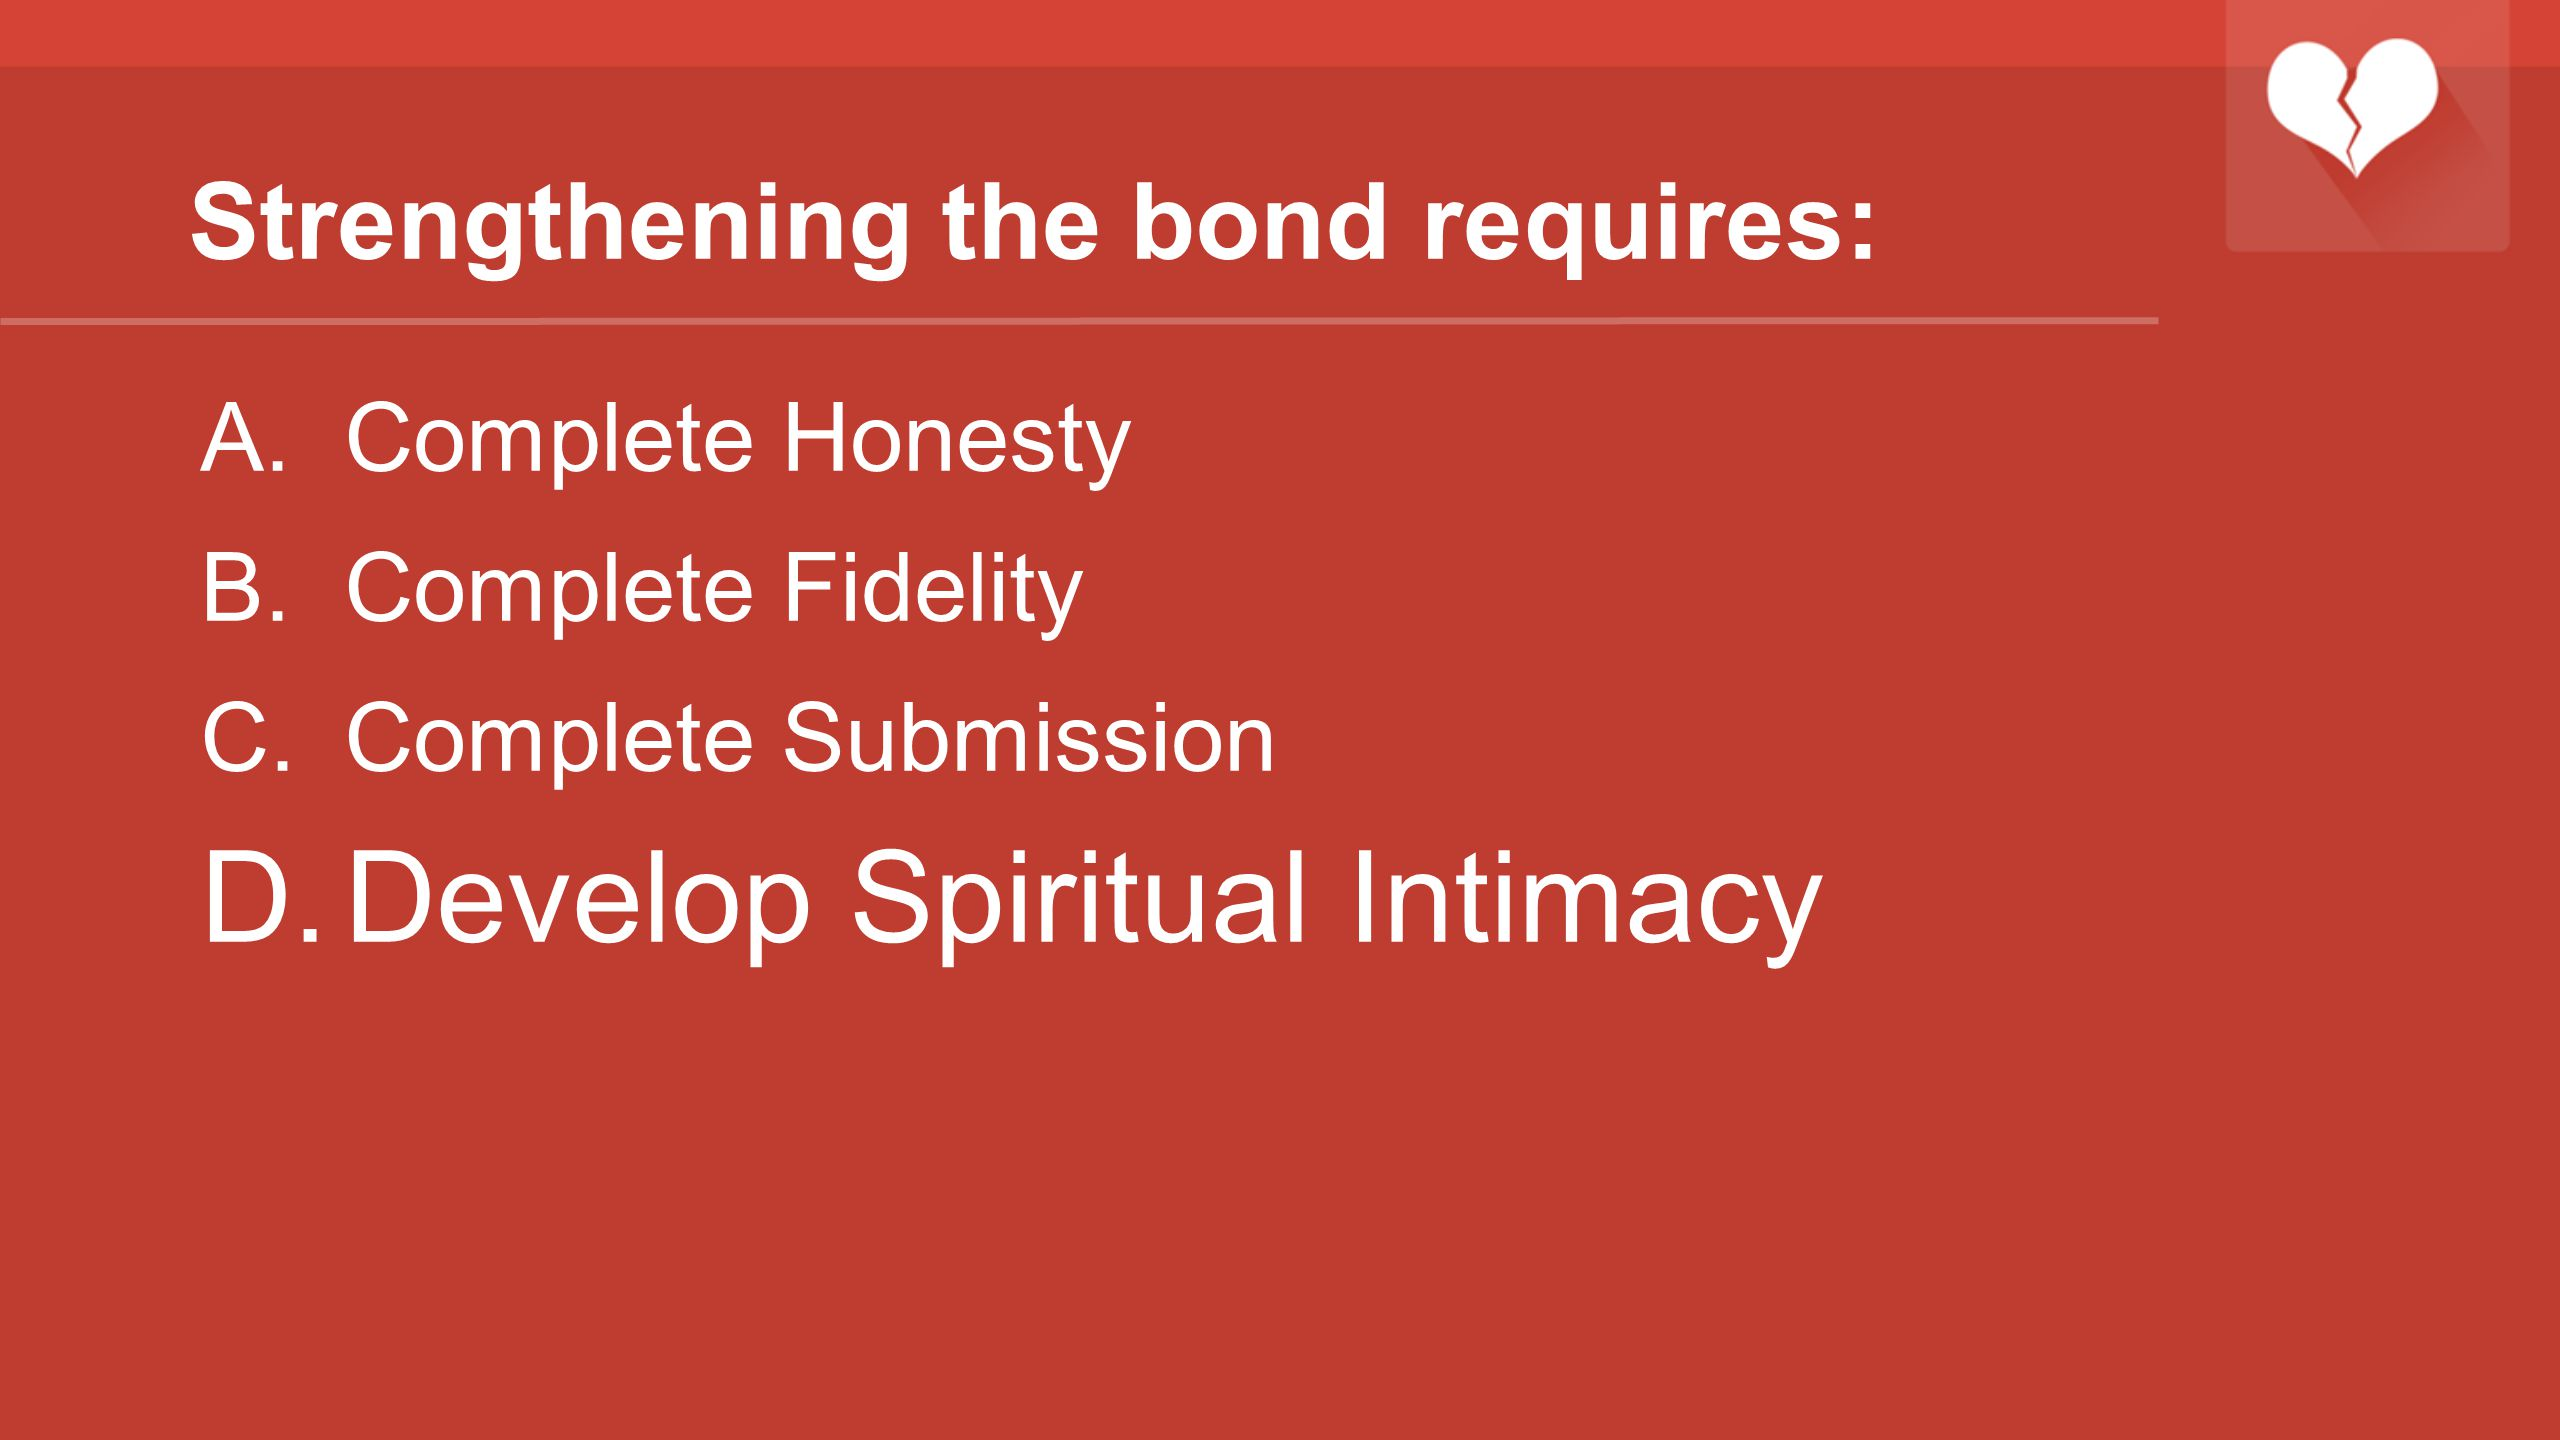 Strengthening the bond requires: A.Complete Honesty B.Complete Fidelity C.Complete Submission D.Develop Spiritual Intimacy